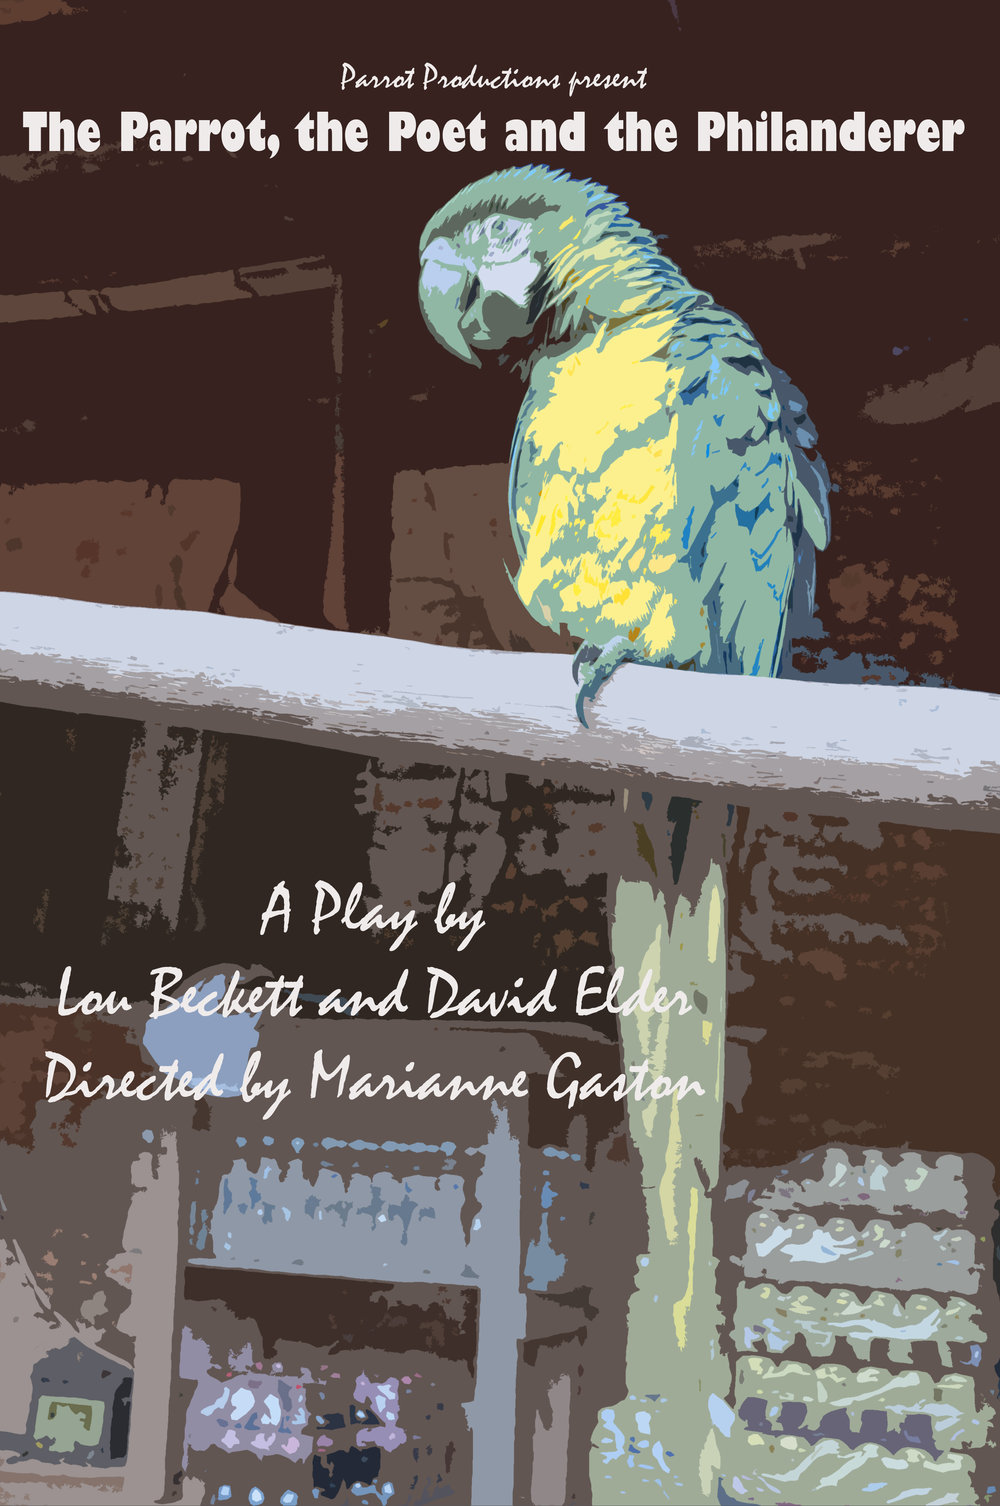 Parrot, Poet and Philanderer - programme cover.jpg